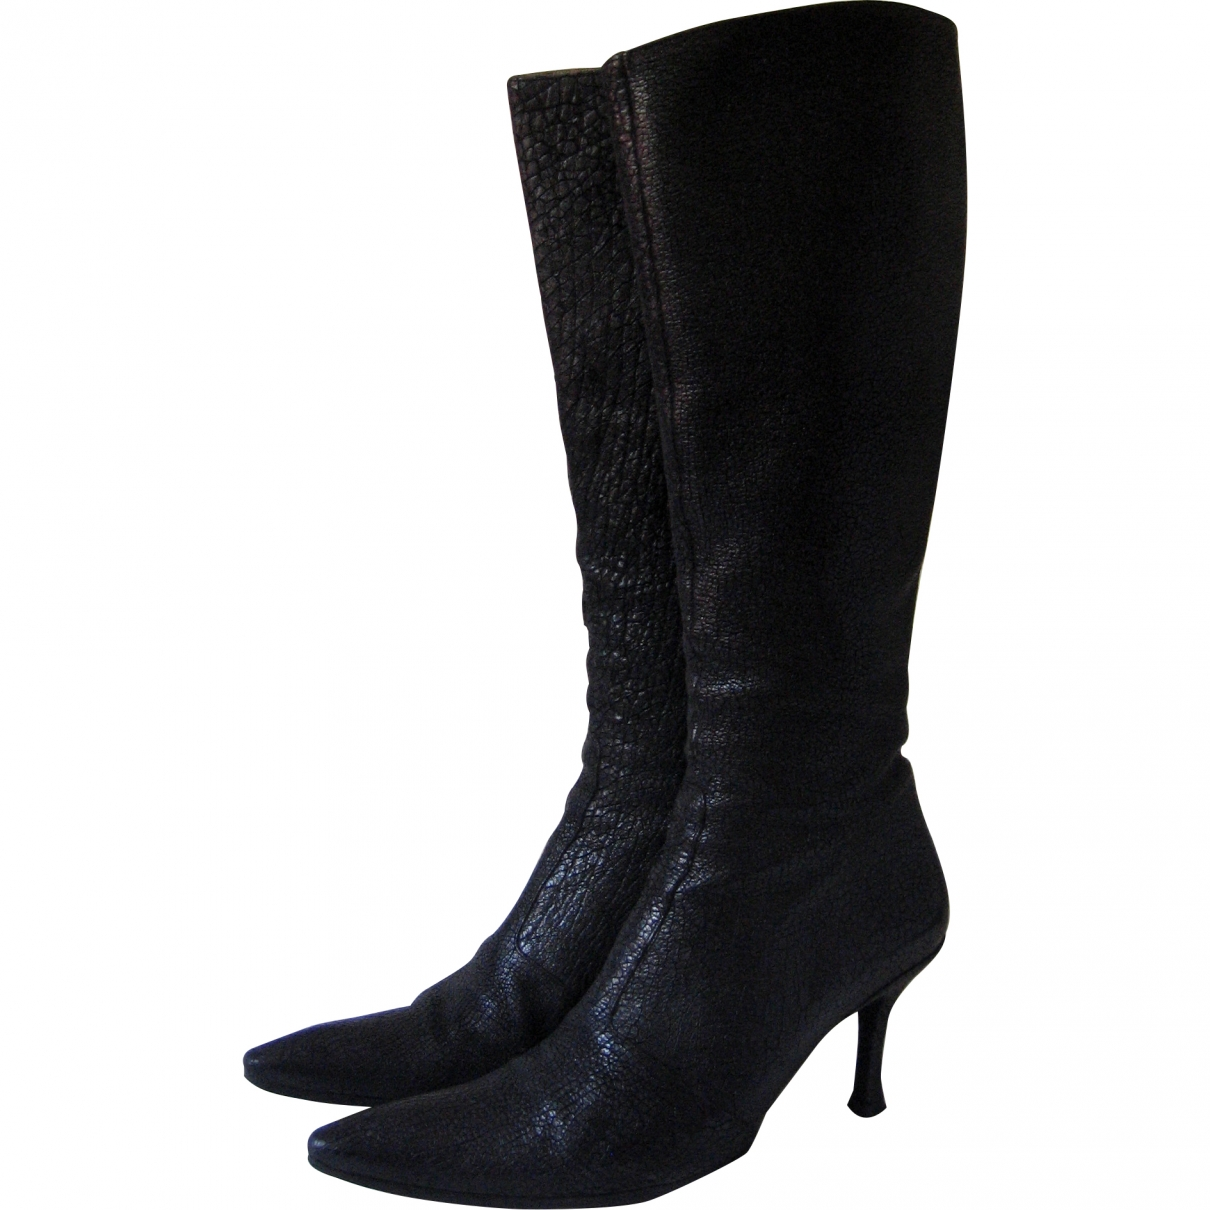 Free Lance \N Black Leather Boots for Women 38.5 EU